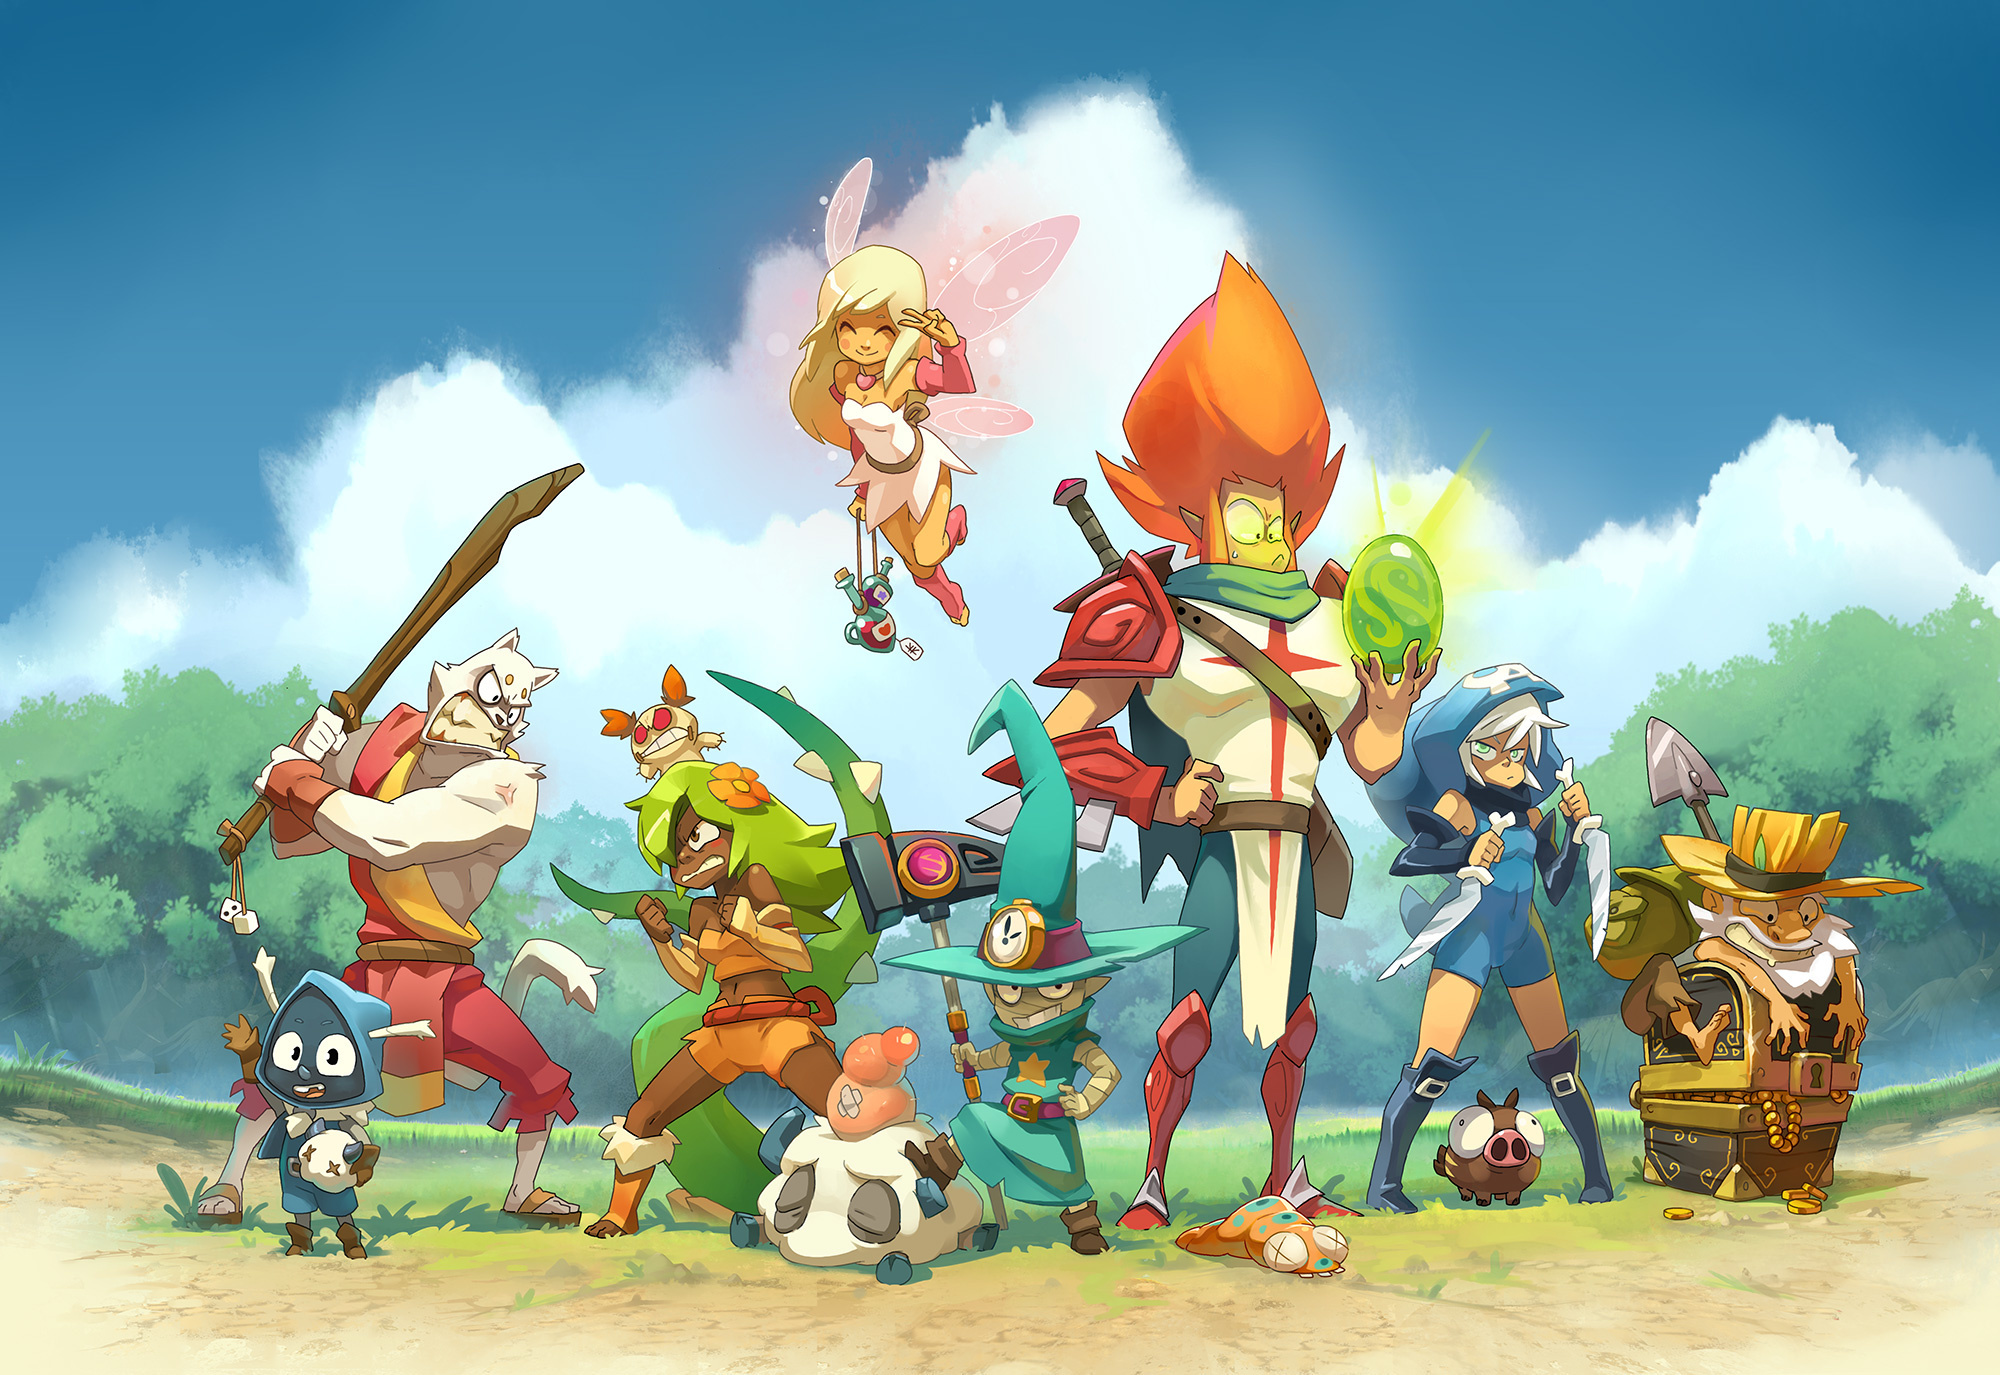 Anime Wallpaper Steam Official Illustration Wallpapers Dofus Touch A